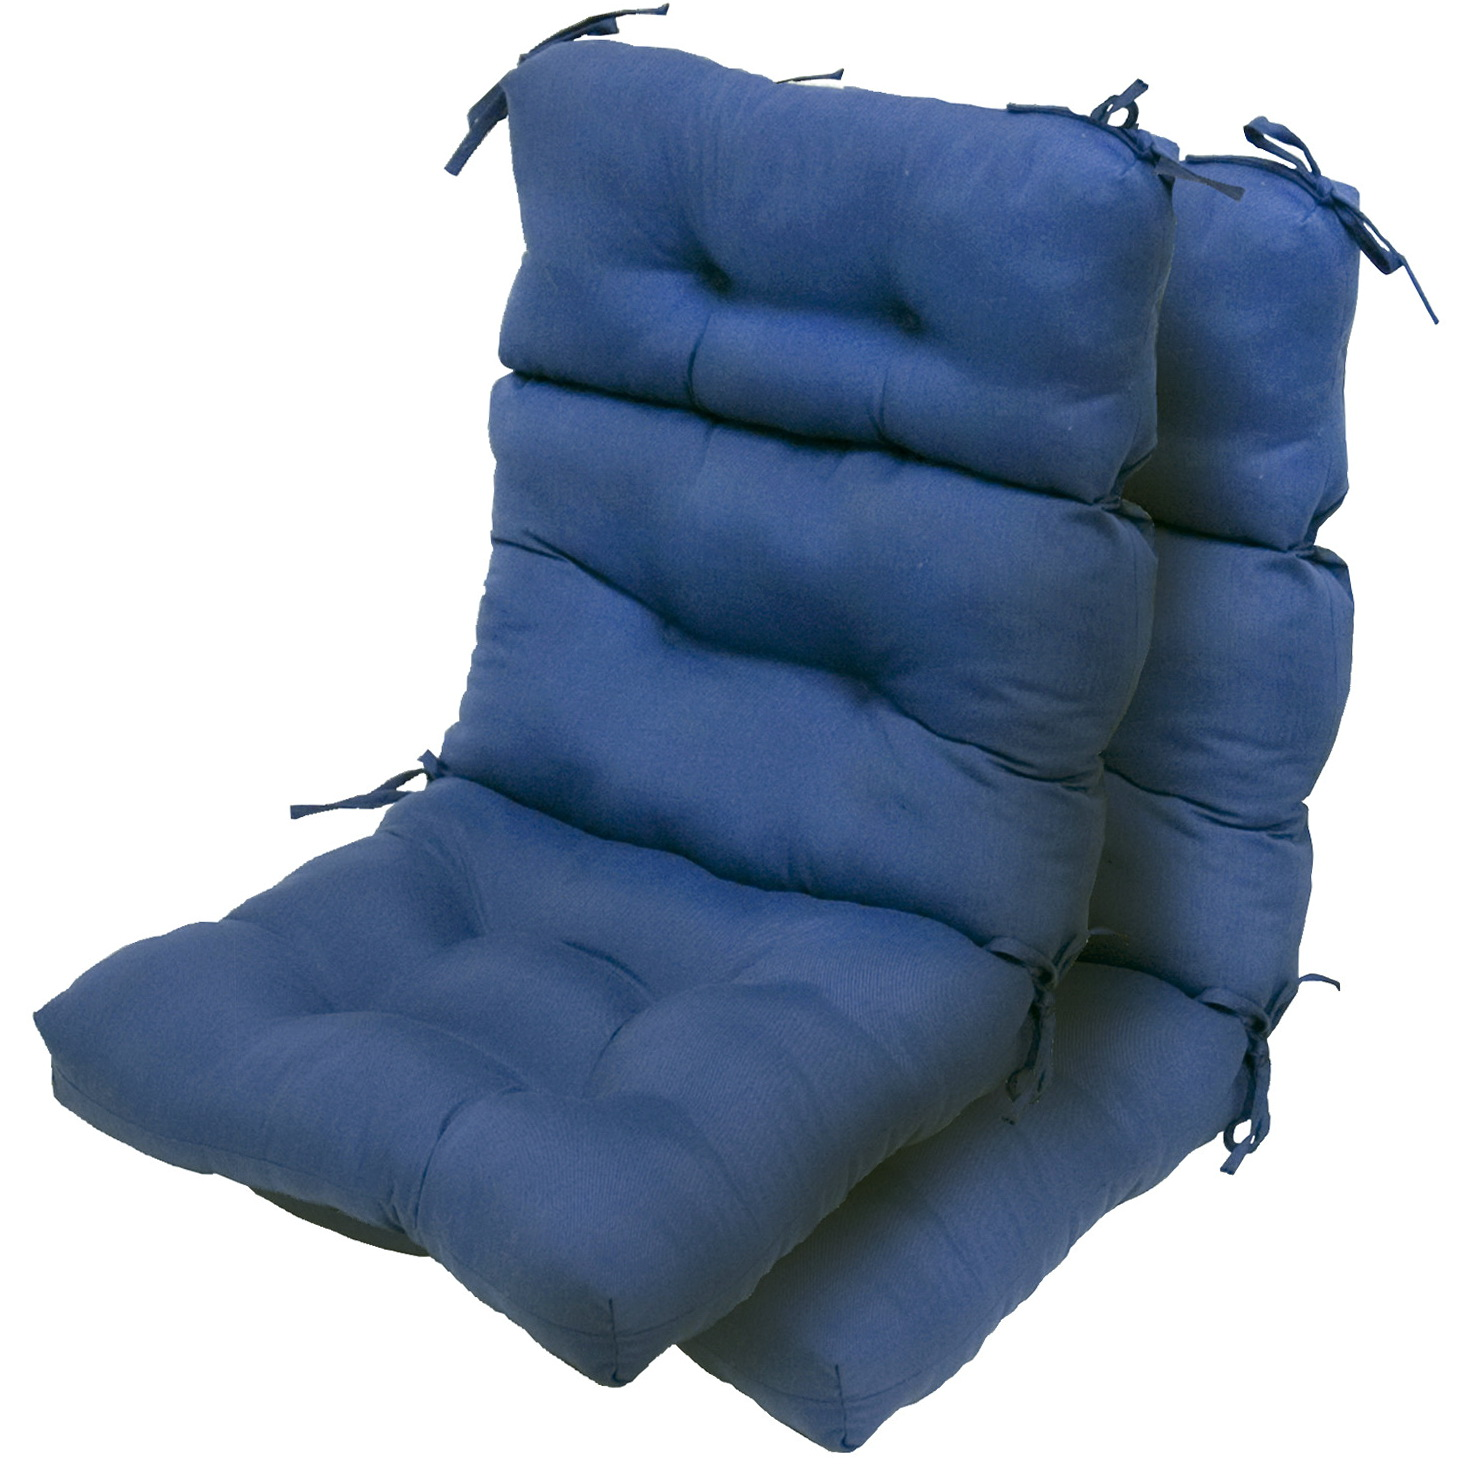 High Back Chair Cushions Outdoor Furniture